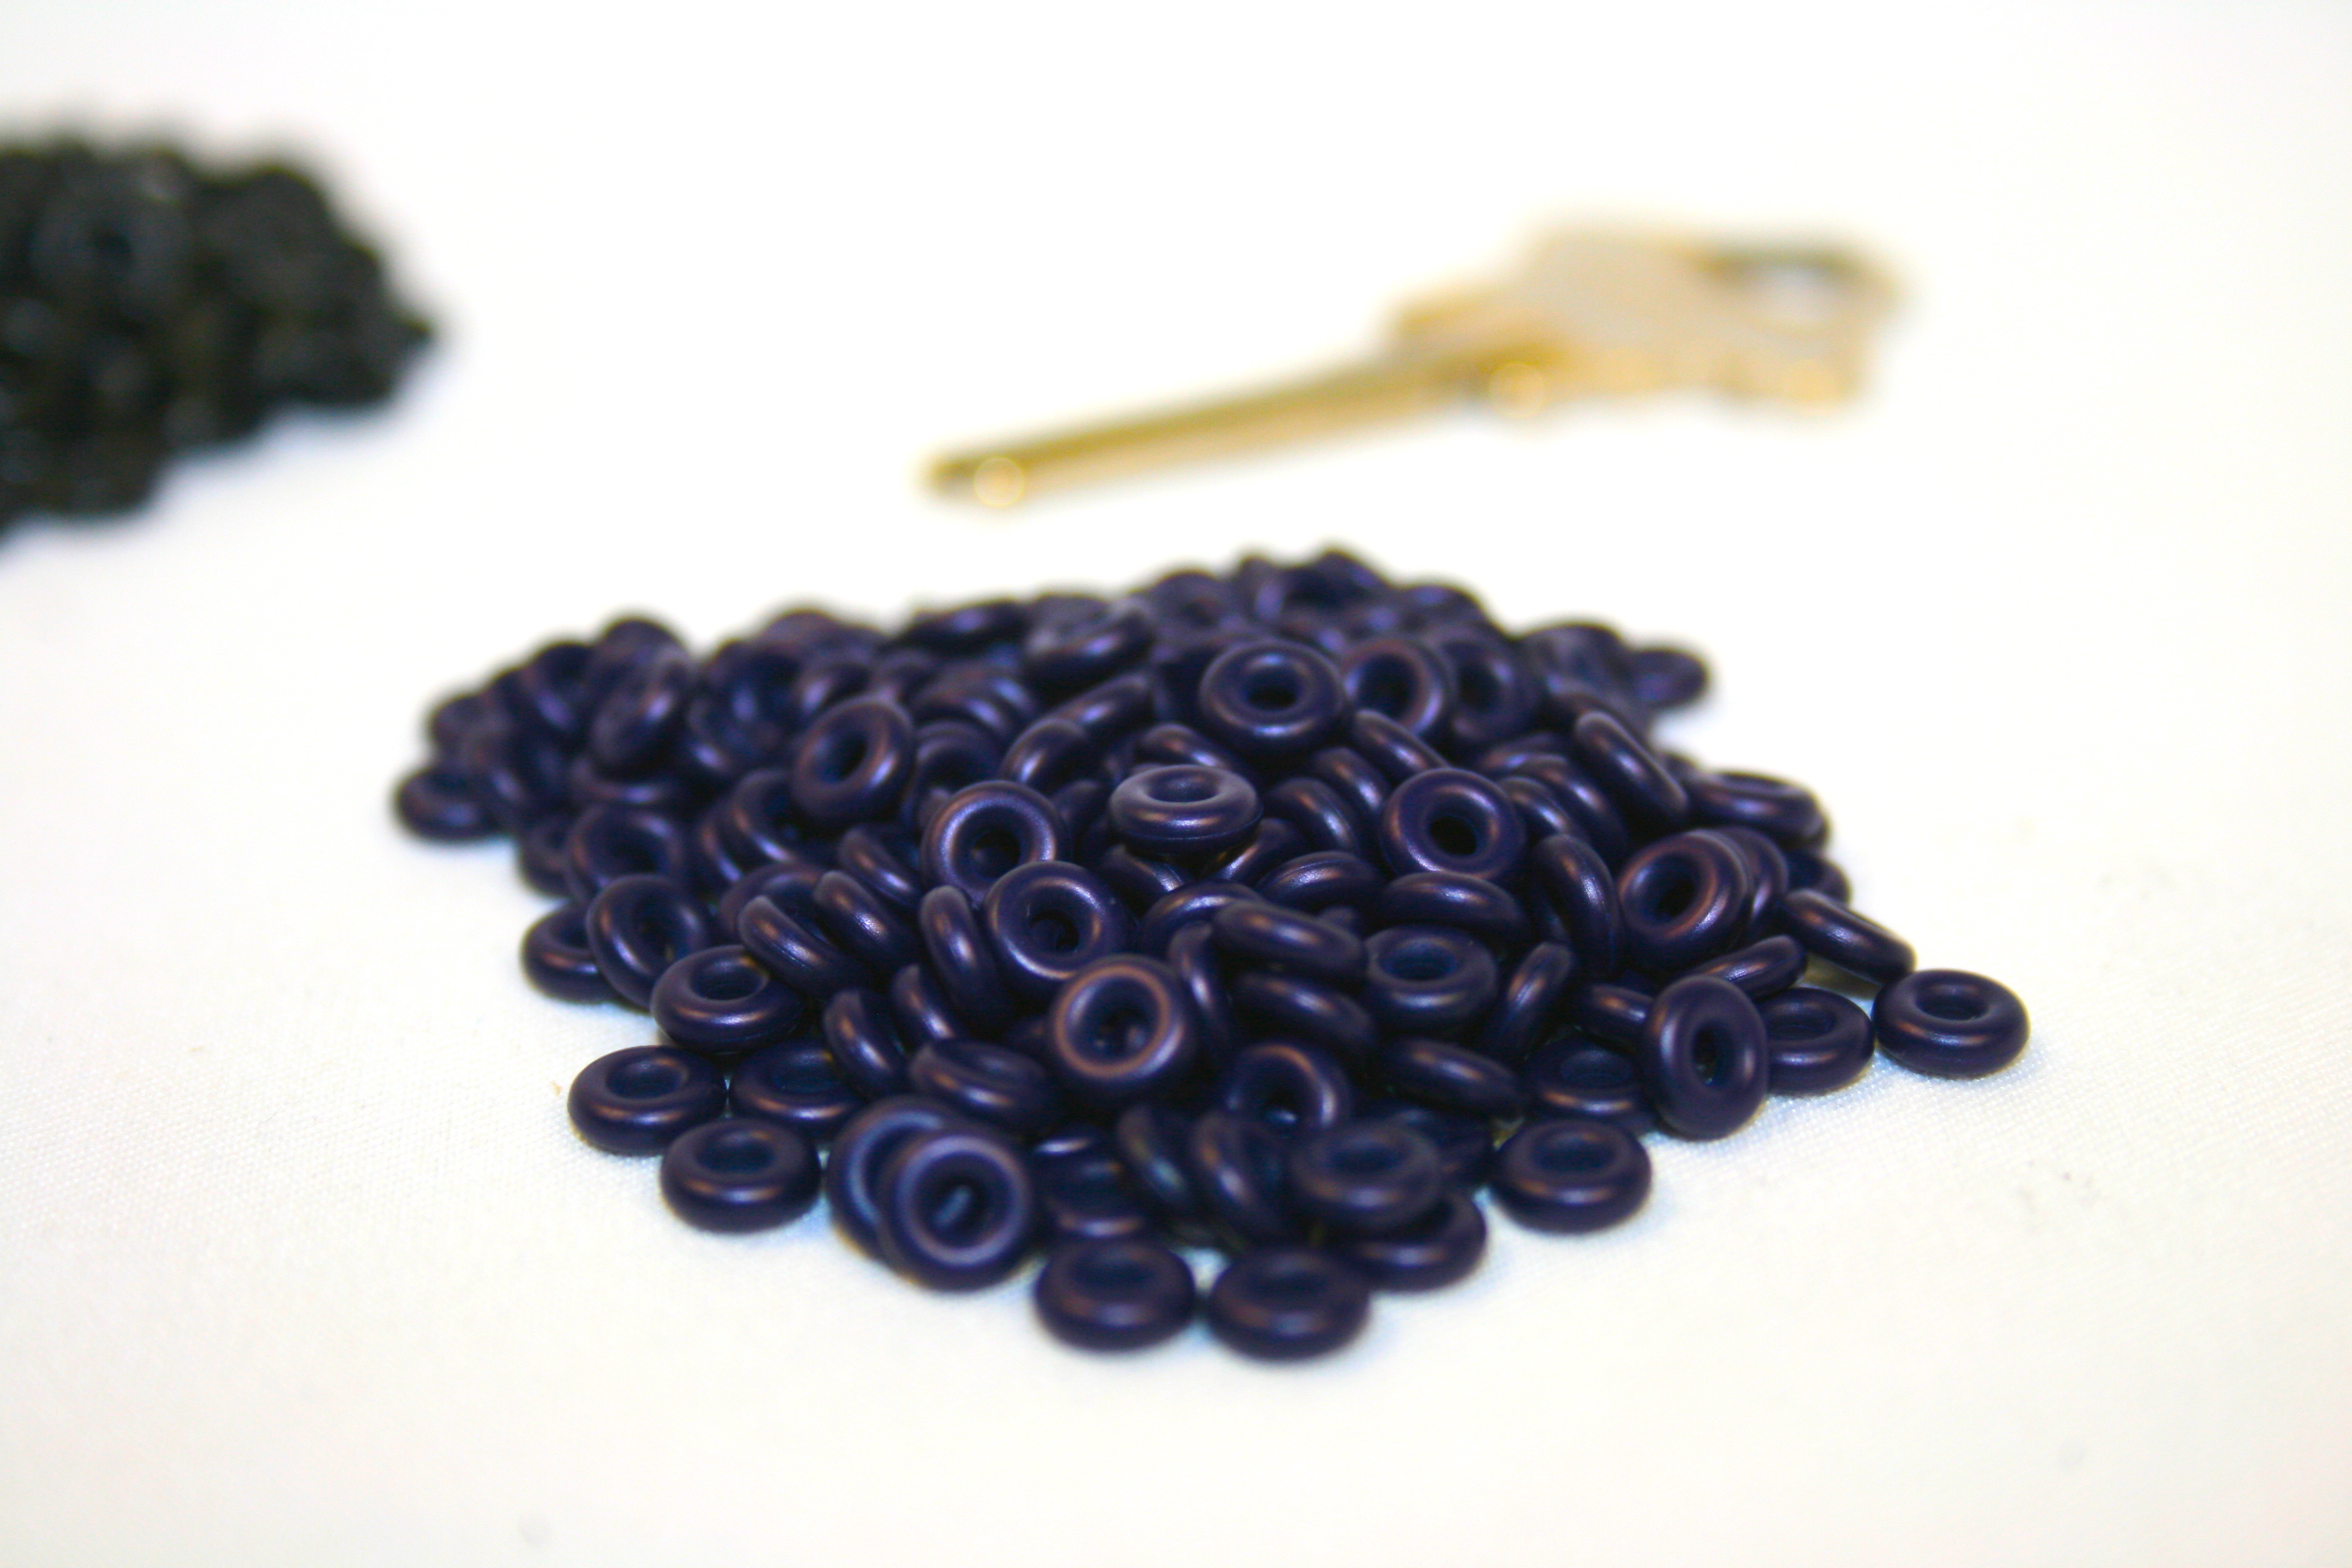 Small O-rings - Coating Systems, Inc.